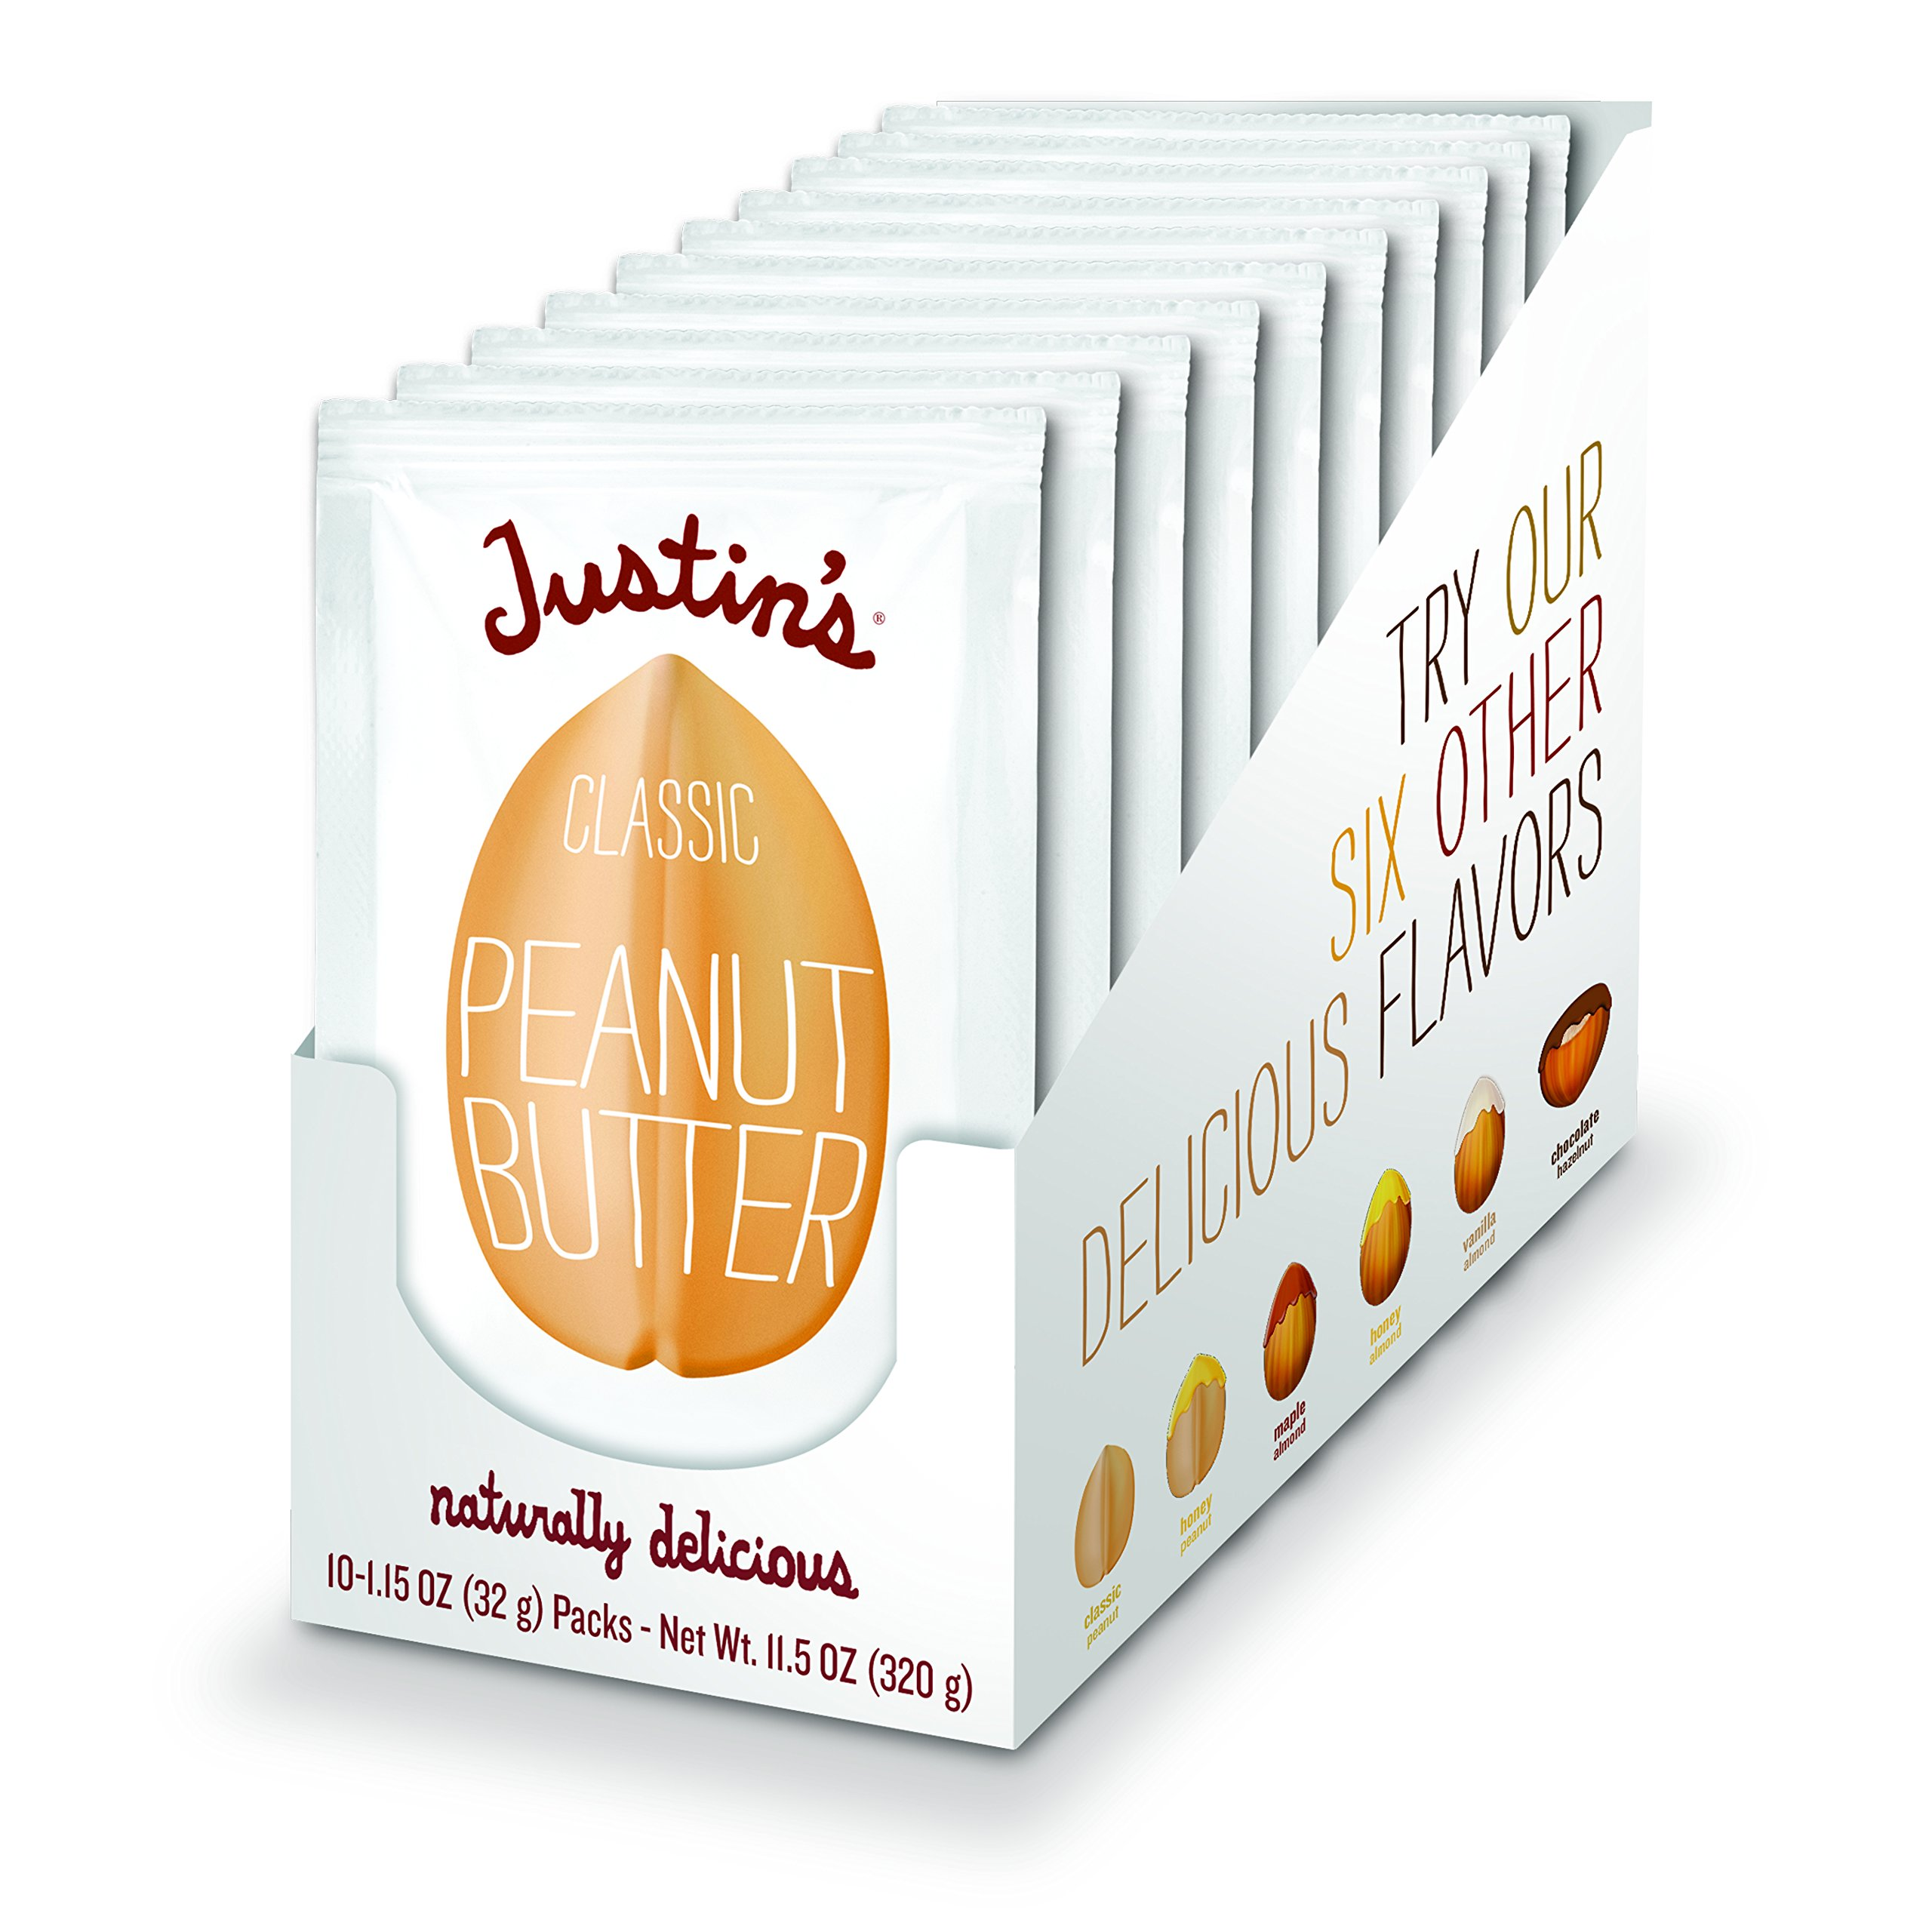 Classic Peanut Butter Squeeze Packs by Justin's, Only Two Ingredients, Gluten-free, Non-GMO, Vegan, Sustainably Sourced, Pack of 10 (1.15oz each)